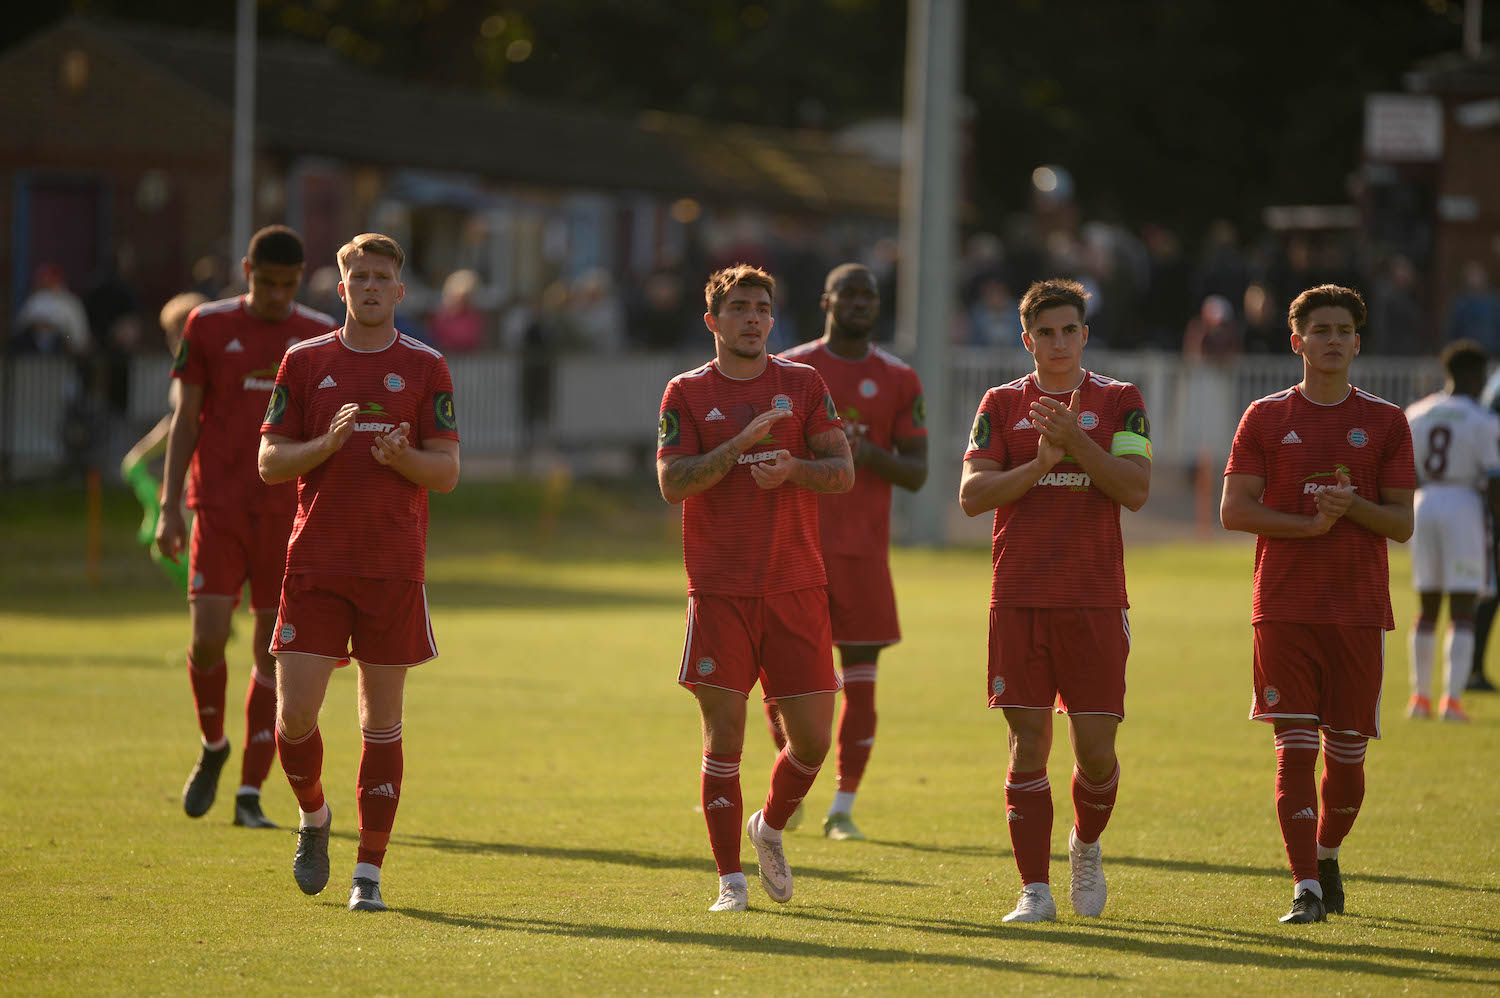 Read the full article - Reds seek revenge over Saints in cup clash